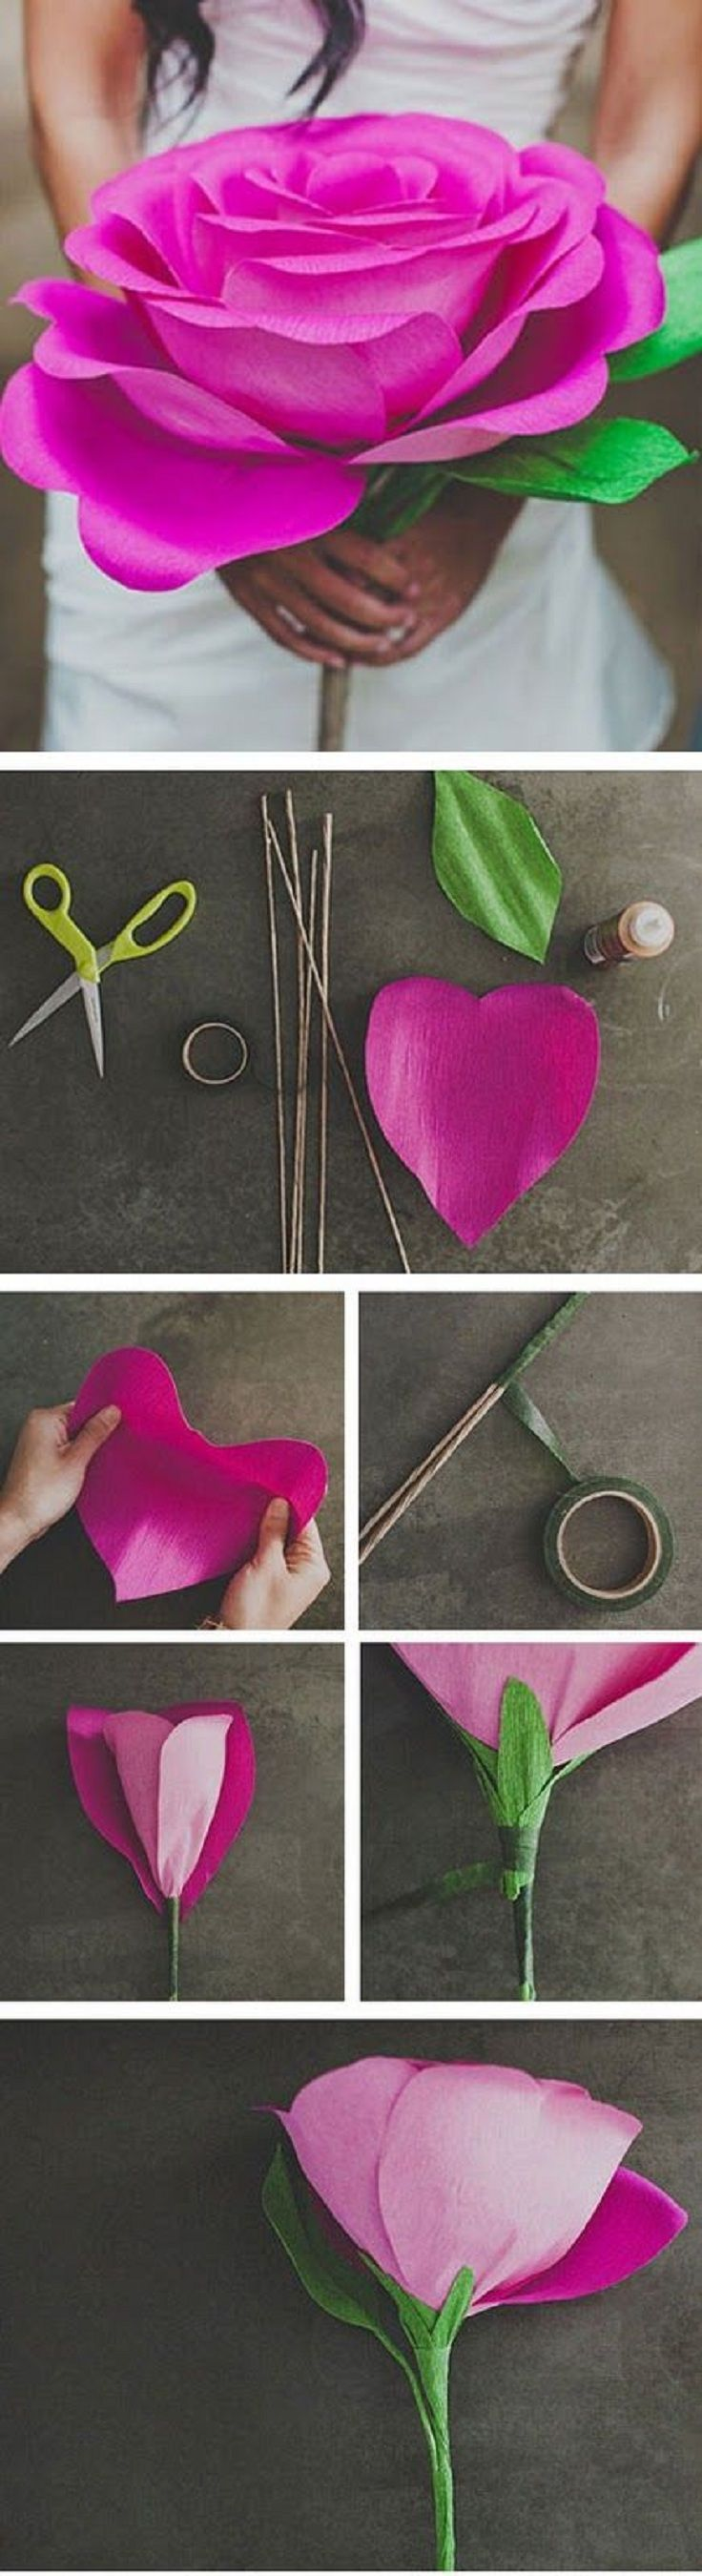 84 best felt and paper flowers images on pinterest paper flowers diy giant paper rose flower rose diy crafts craft ideas diy crafts do it yourself diy projects crafty paper flower do it yourself crafts mightylinksfo Images